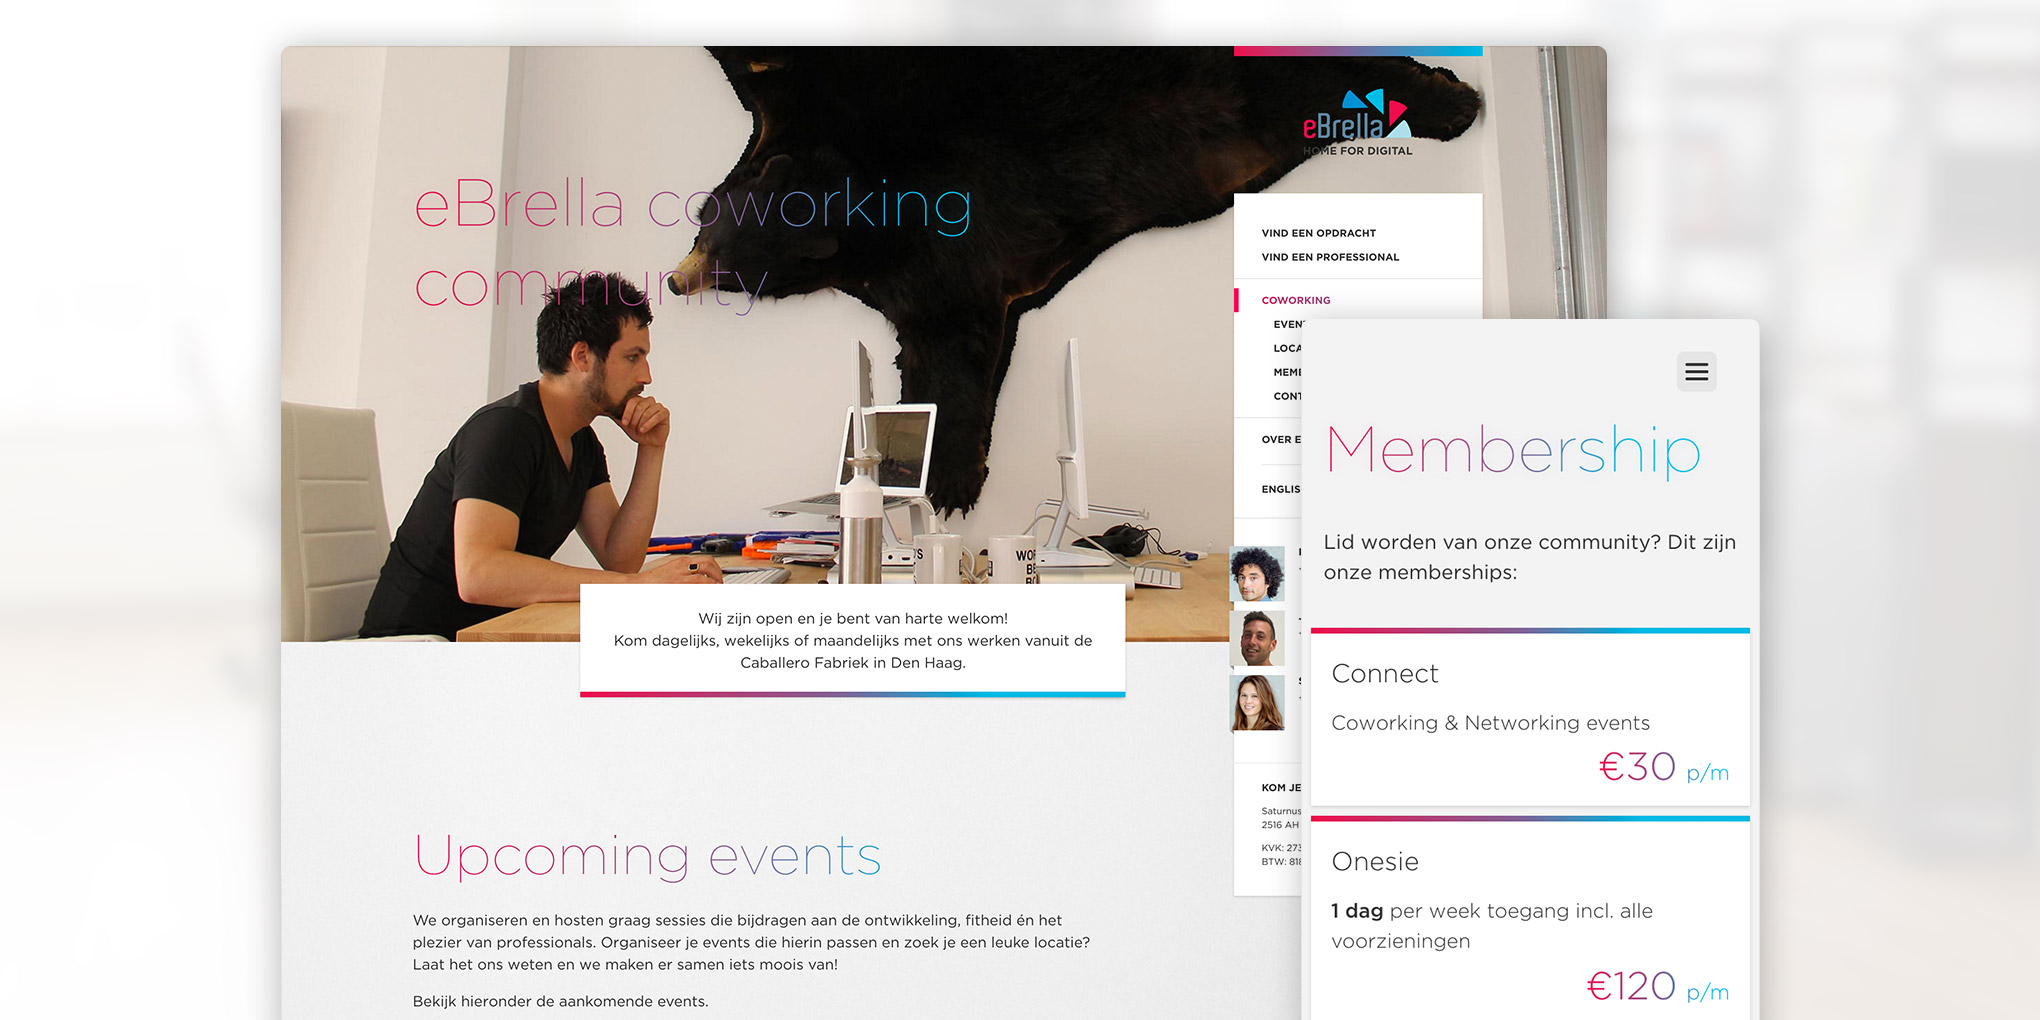 eBrella coworking site layout. A responsive single-page design promoting their workspace